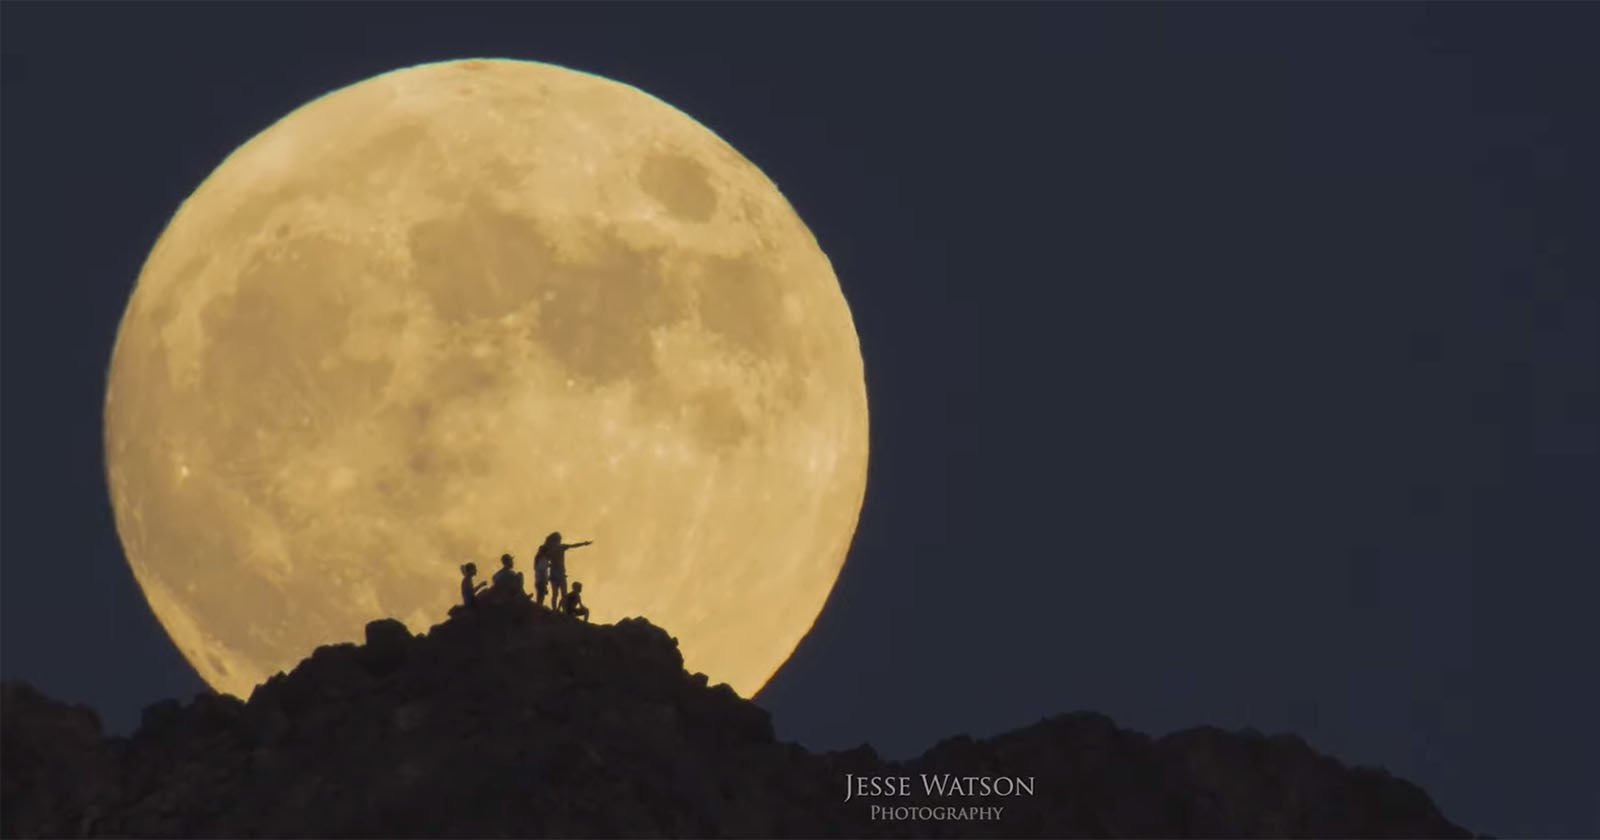 Silhouettes of a Hiking Family Framed Inside a Rising Full Moon